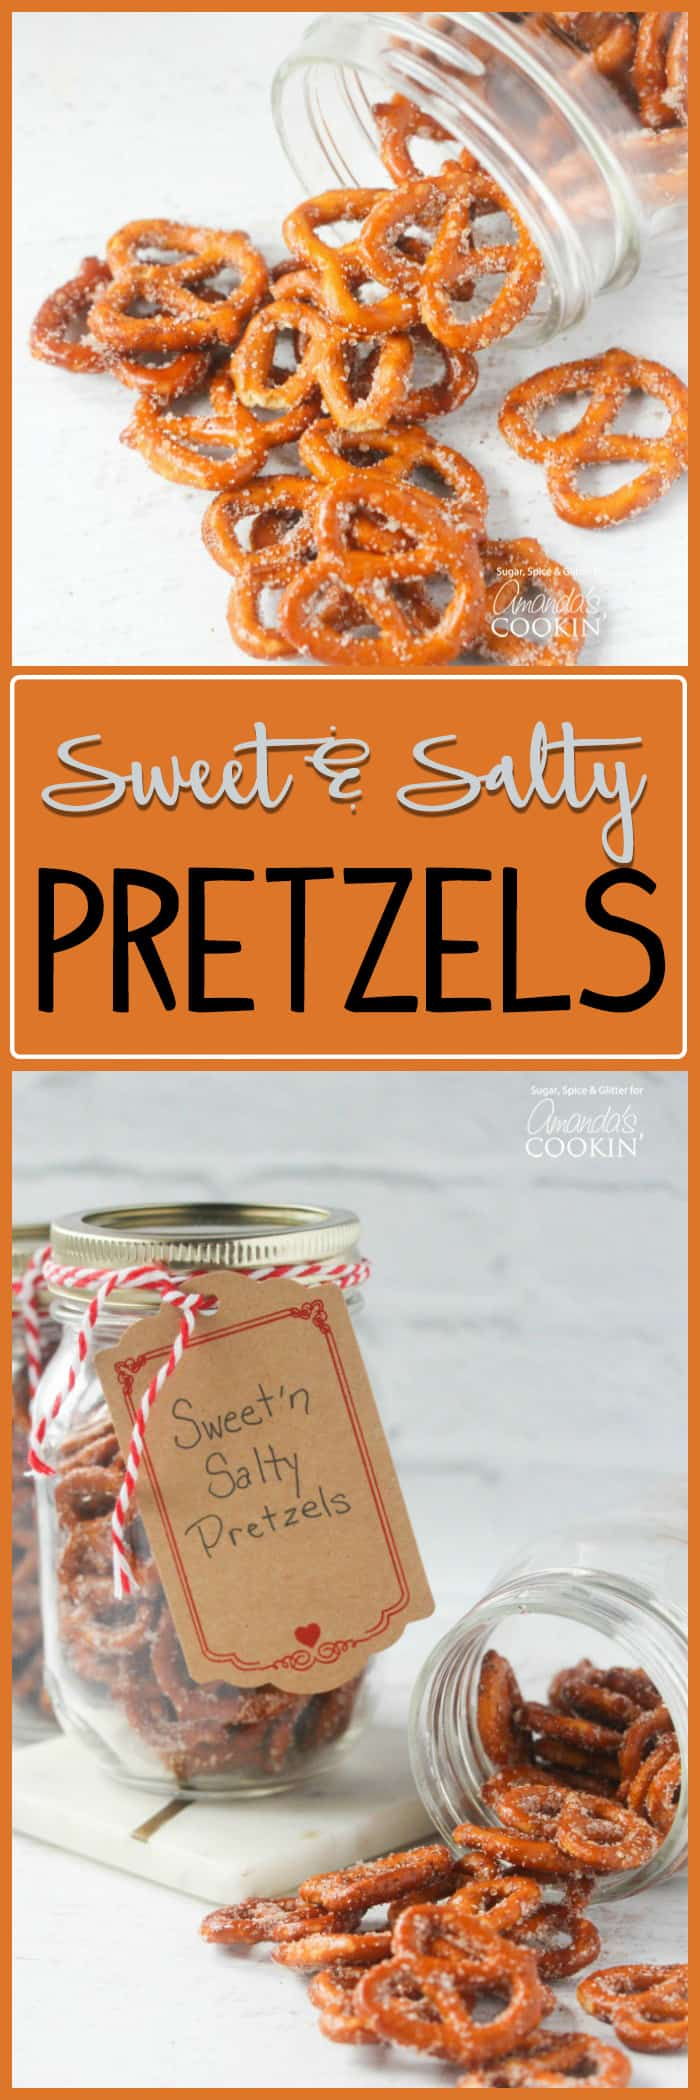 These sweet and salty pretzels are all packaged up to give as a gift. These pretzels in a jar are perfect for coworkers, friends, neighbors, teachers, etc.